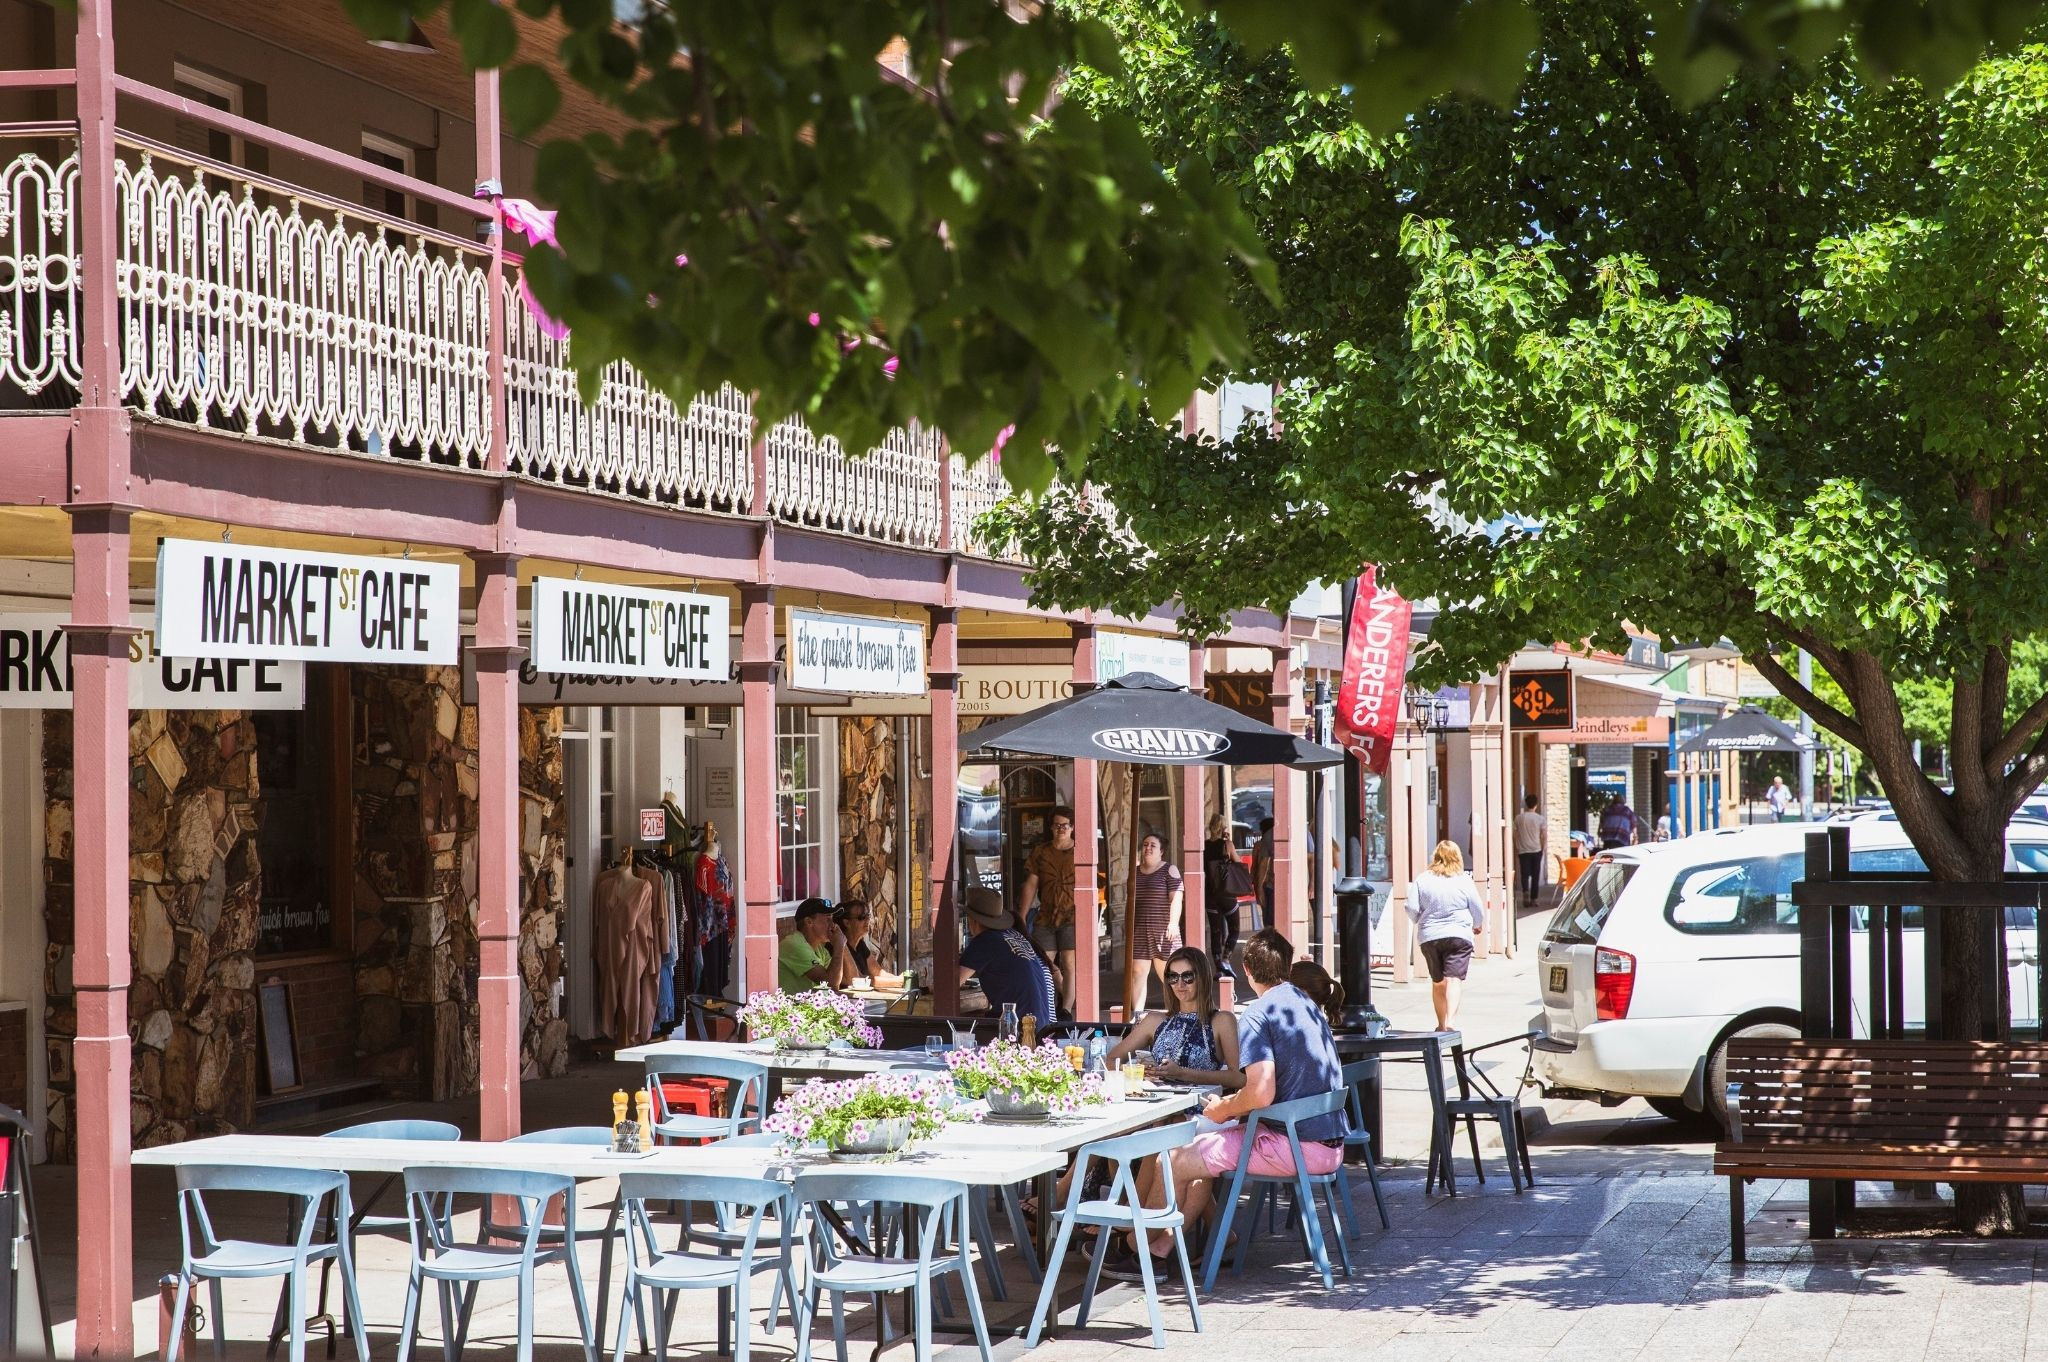 An image of Market Street Cafe in Mudgee NSW